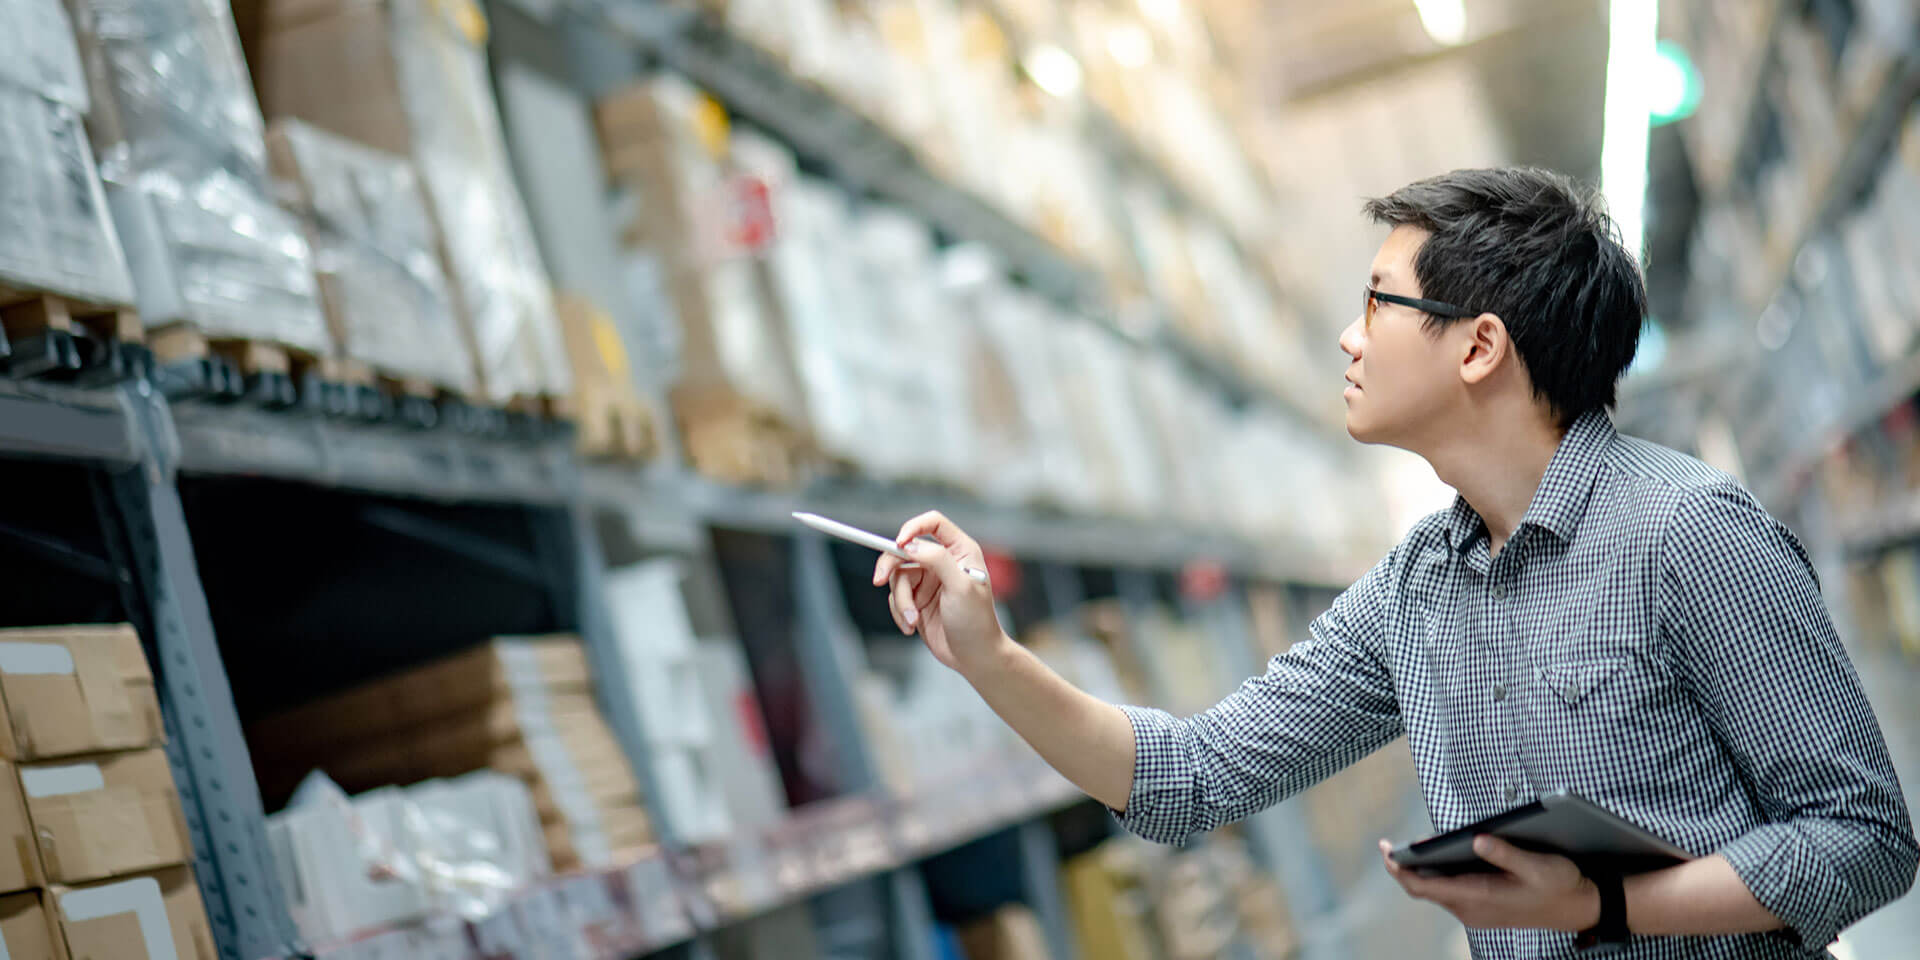 How accurate is your accurate inventory